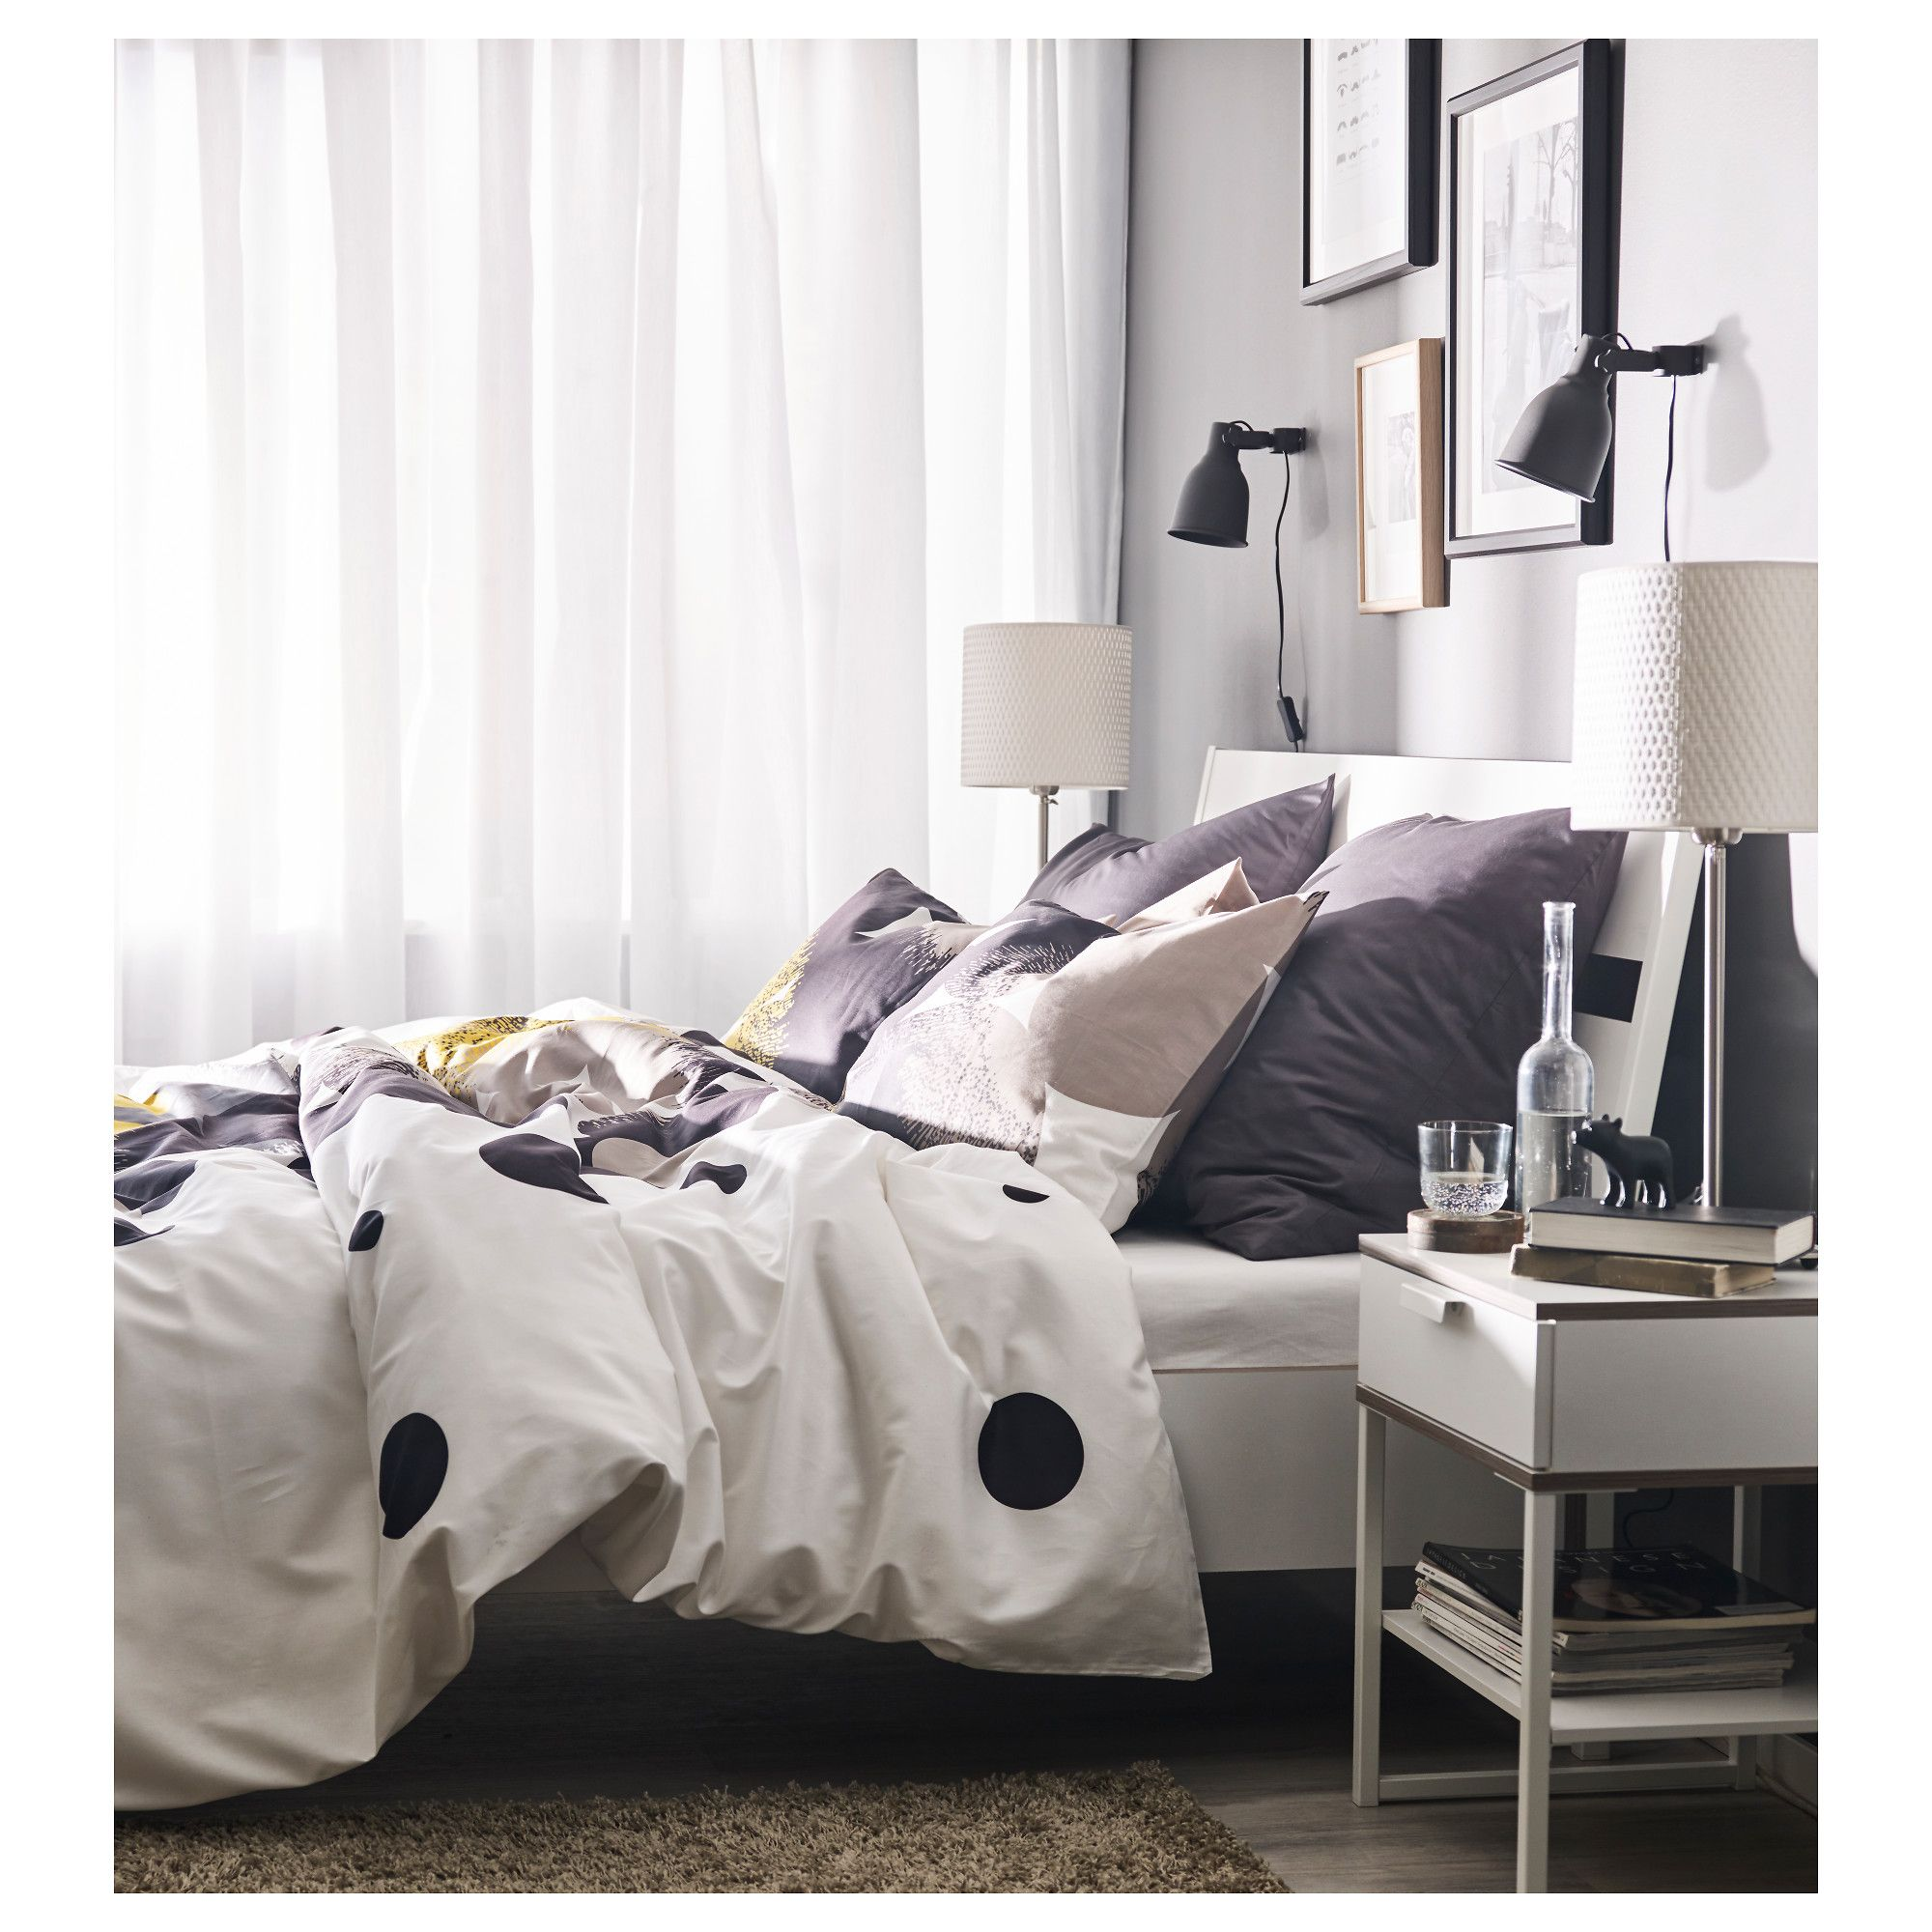 TRYSIL Bed frame white, Luröy Standard Double Ikea bed